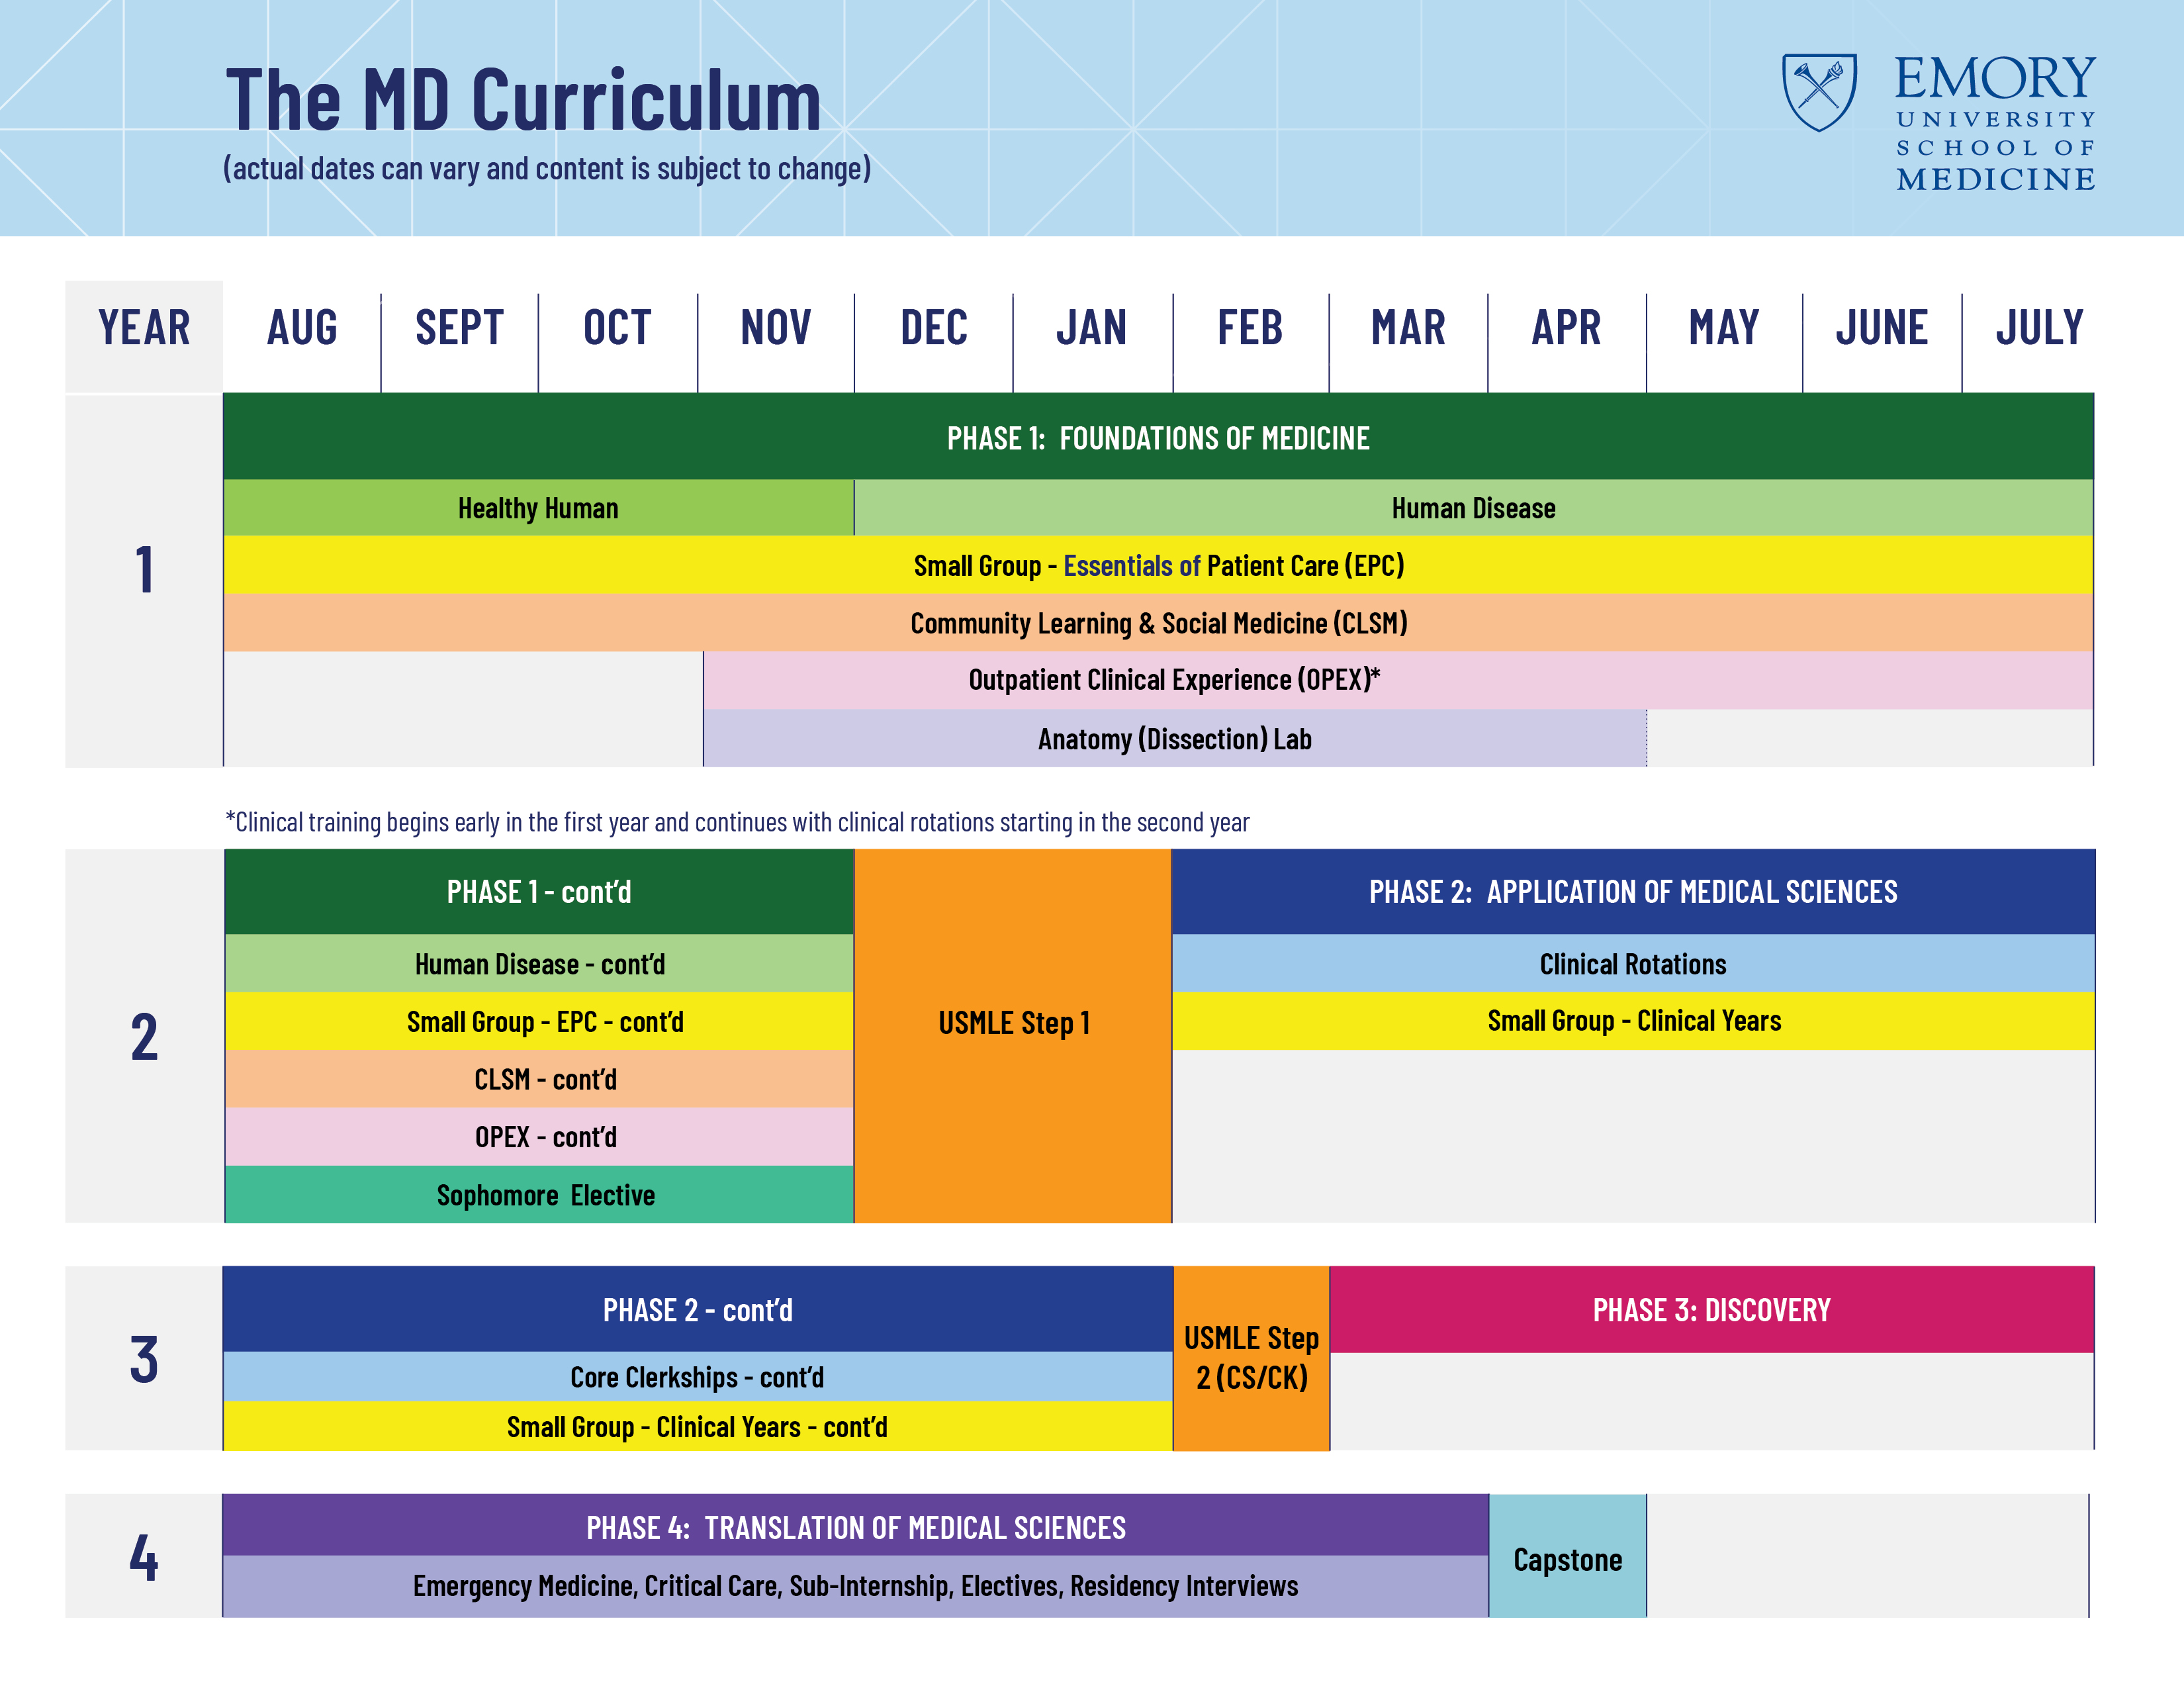 Four Phases in Four Years - The MD Curriculum for the Emory School of Medicine